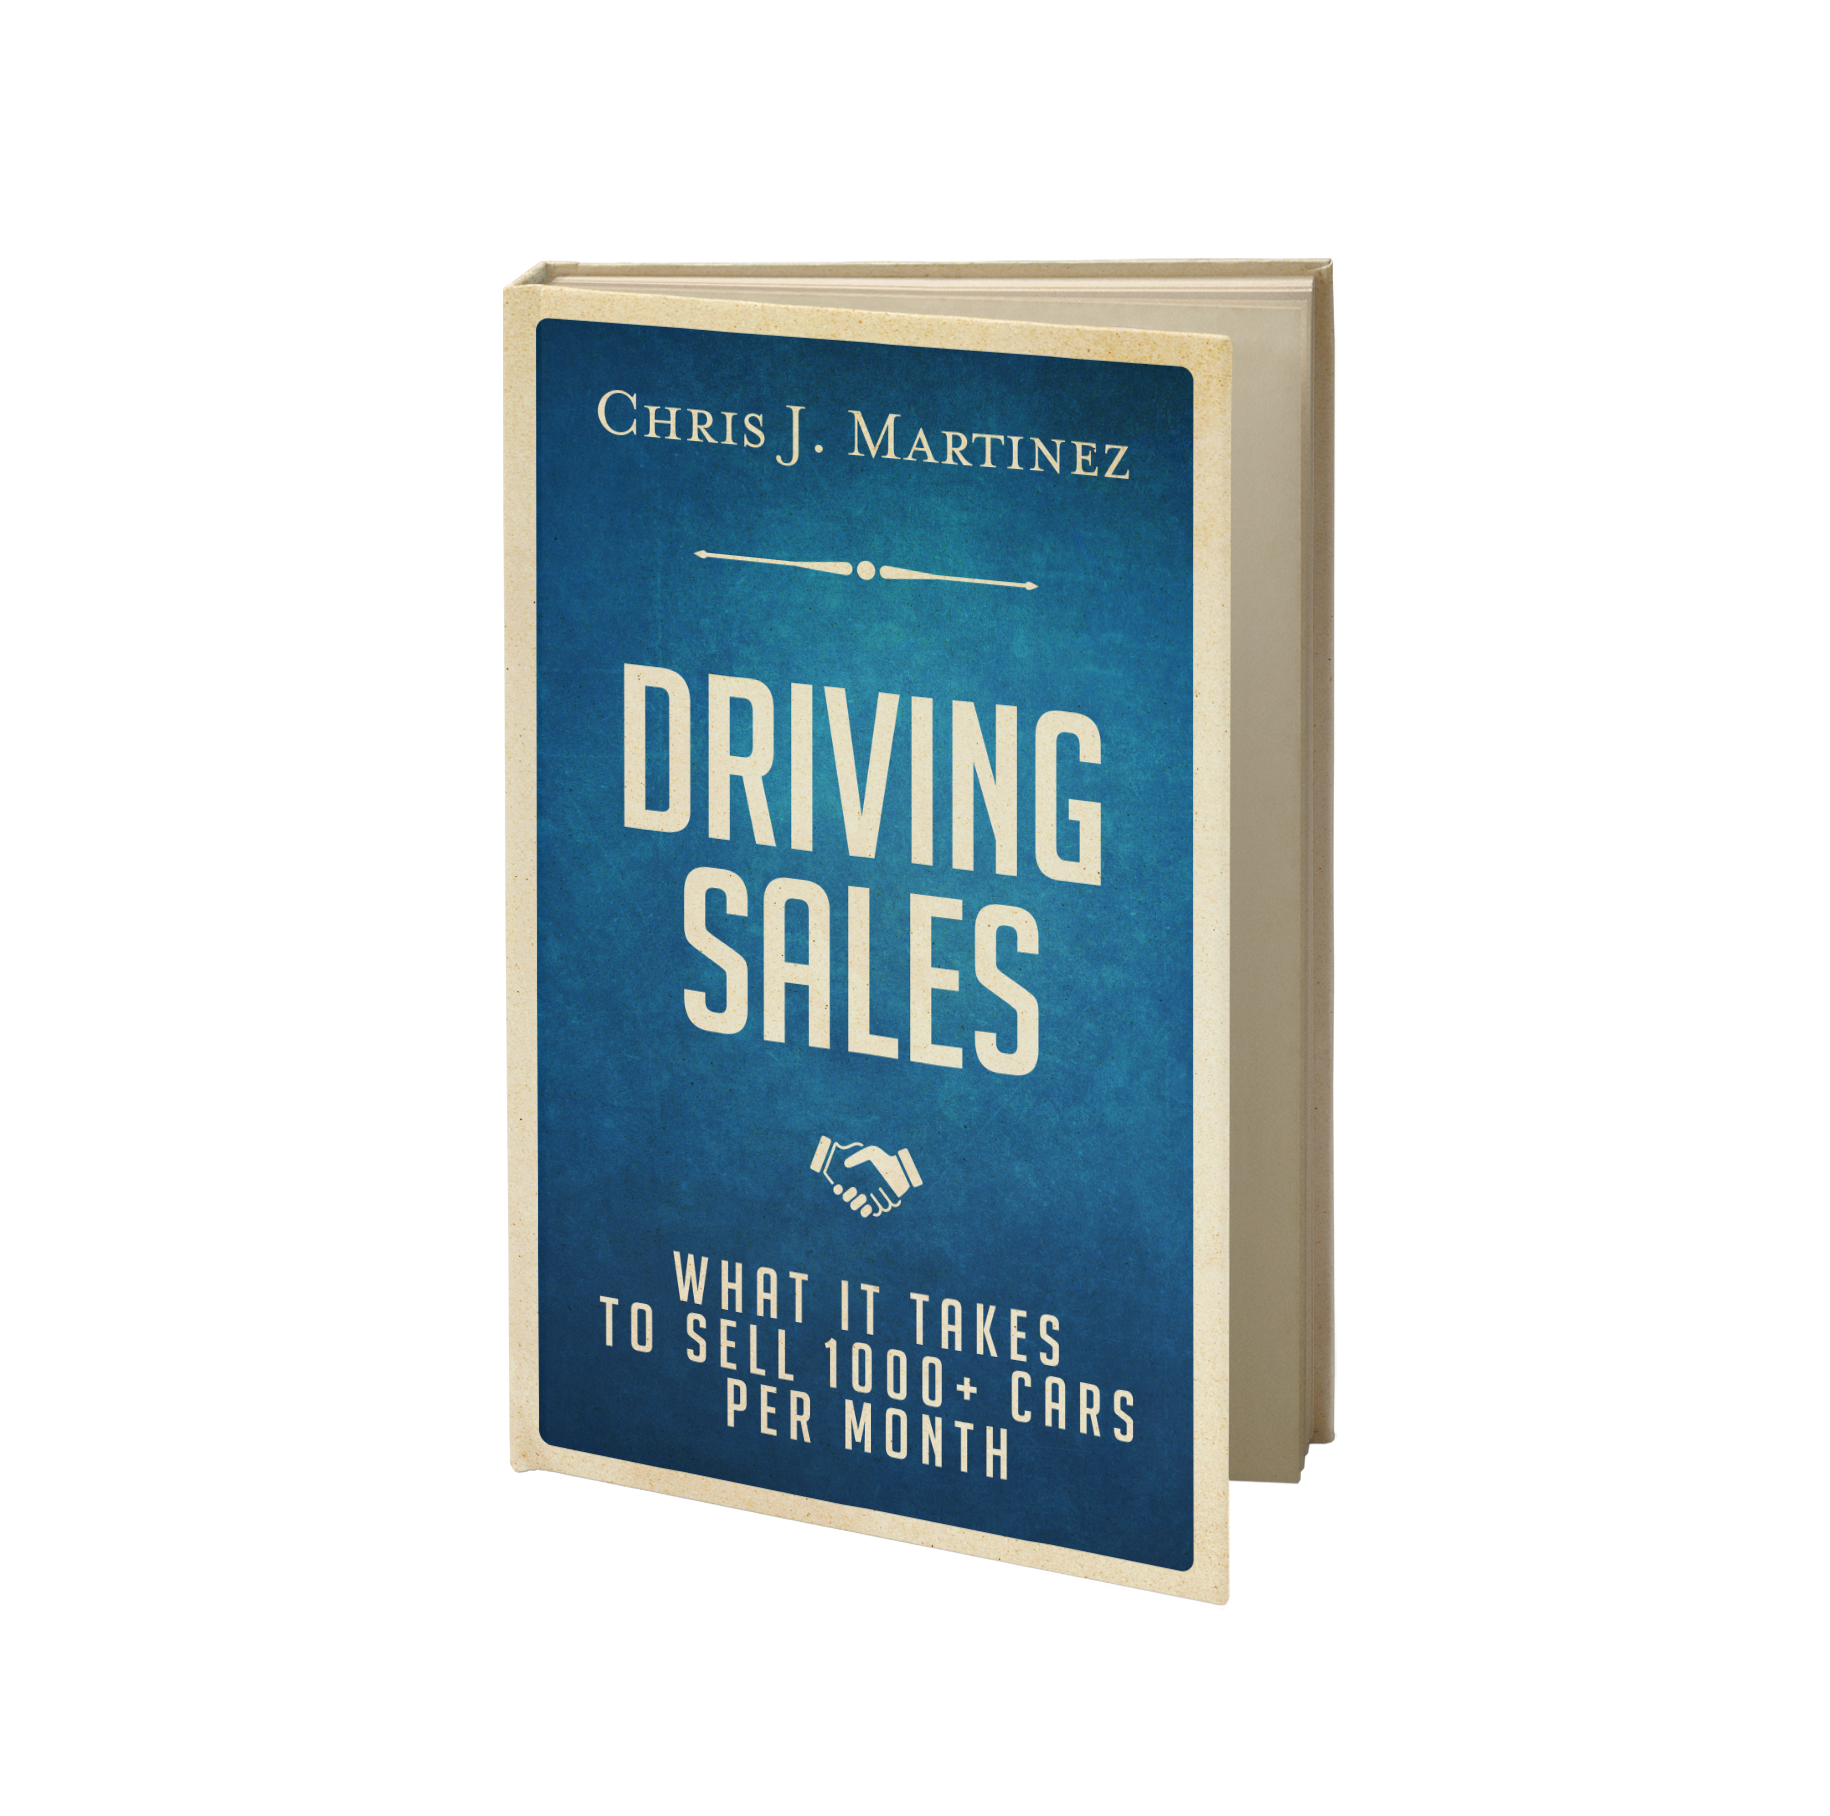 Driving Sales - how to sell 1000 cars per month